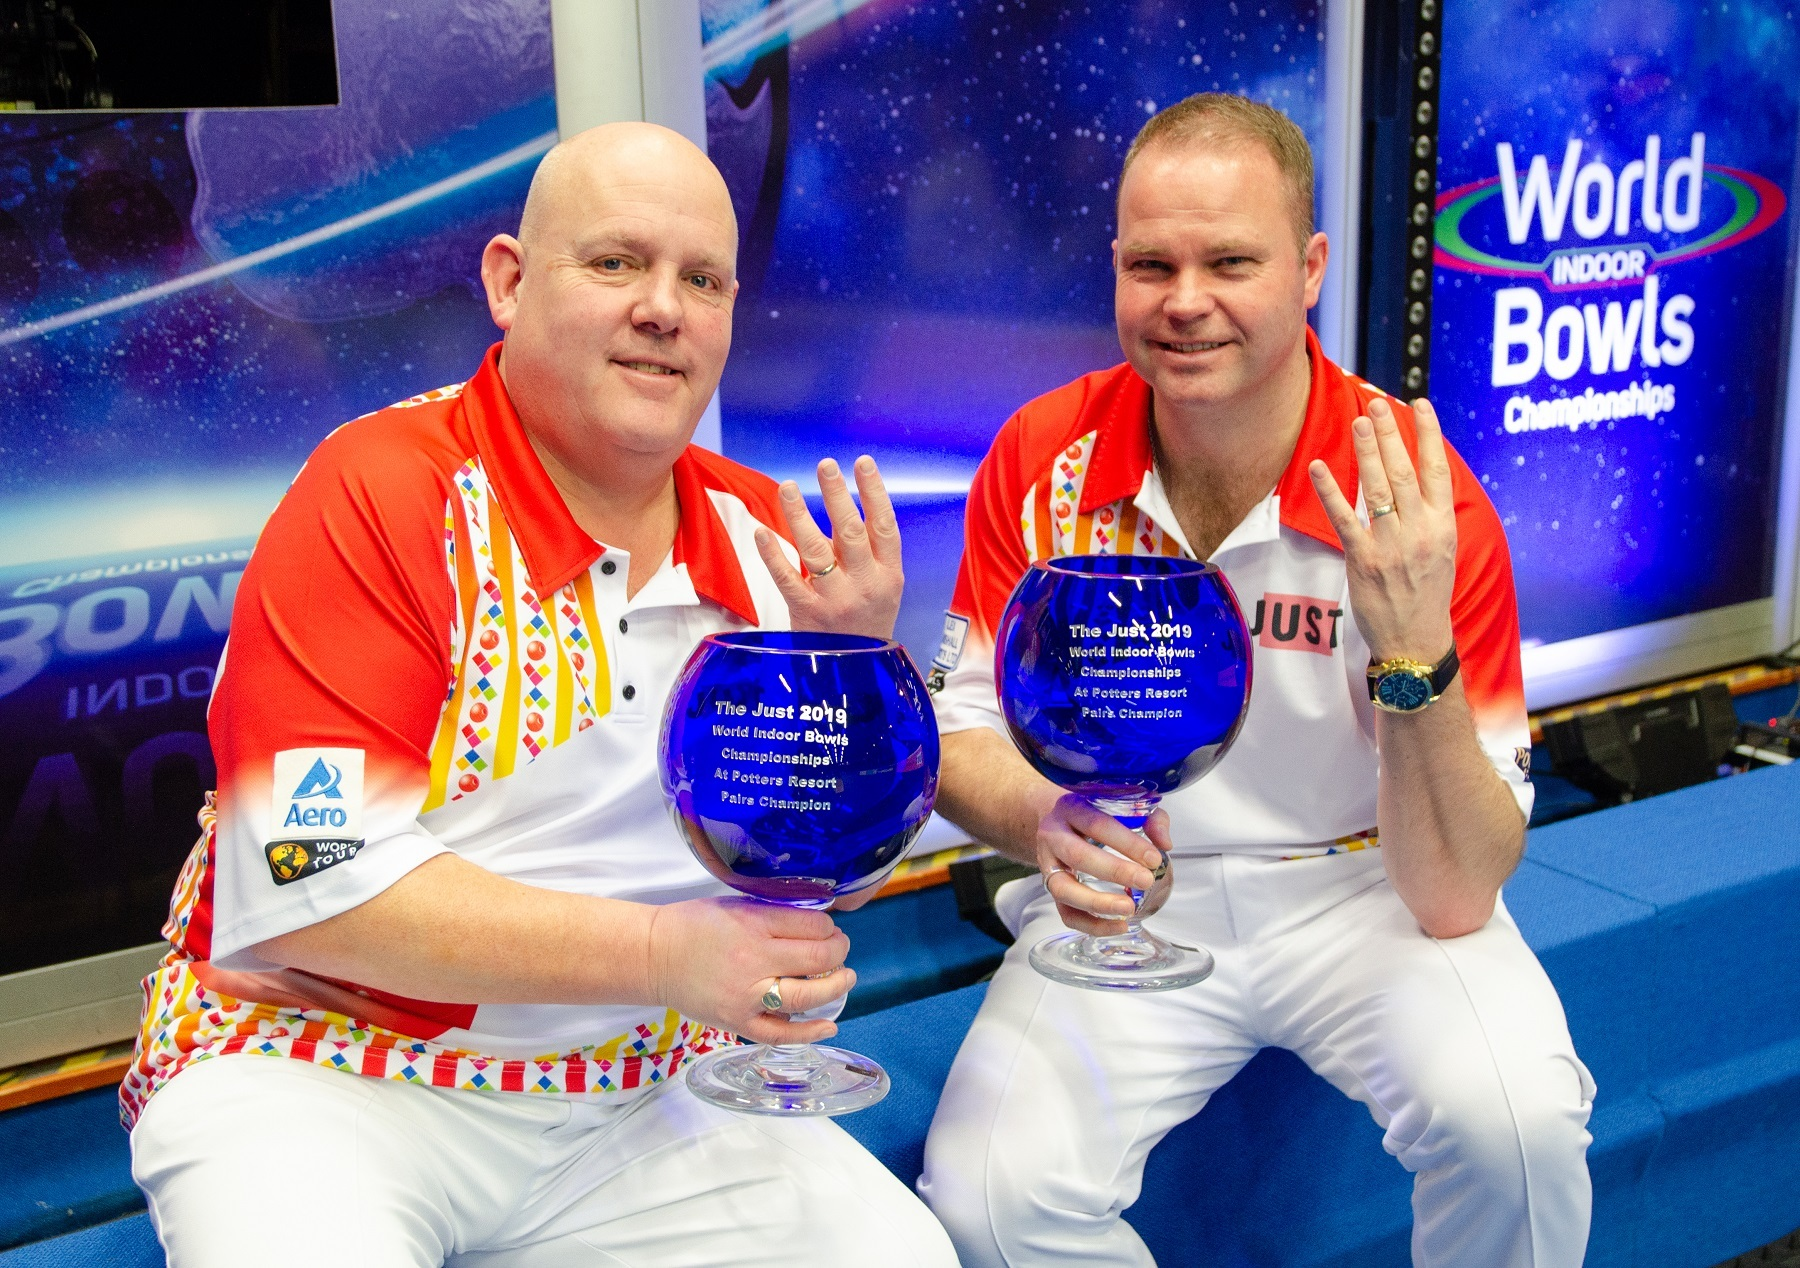 Alex Marshall, shown alongside Paul Foster celebrating their fourth World Indoor Pairs title, has missed out on a chance for a seventh singles title. Image courtesy World Bowls Tour